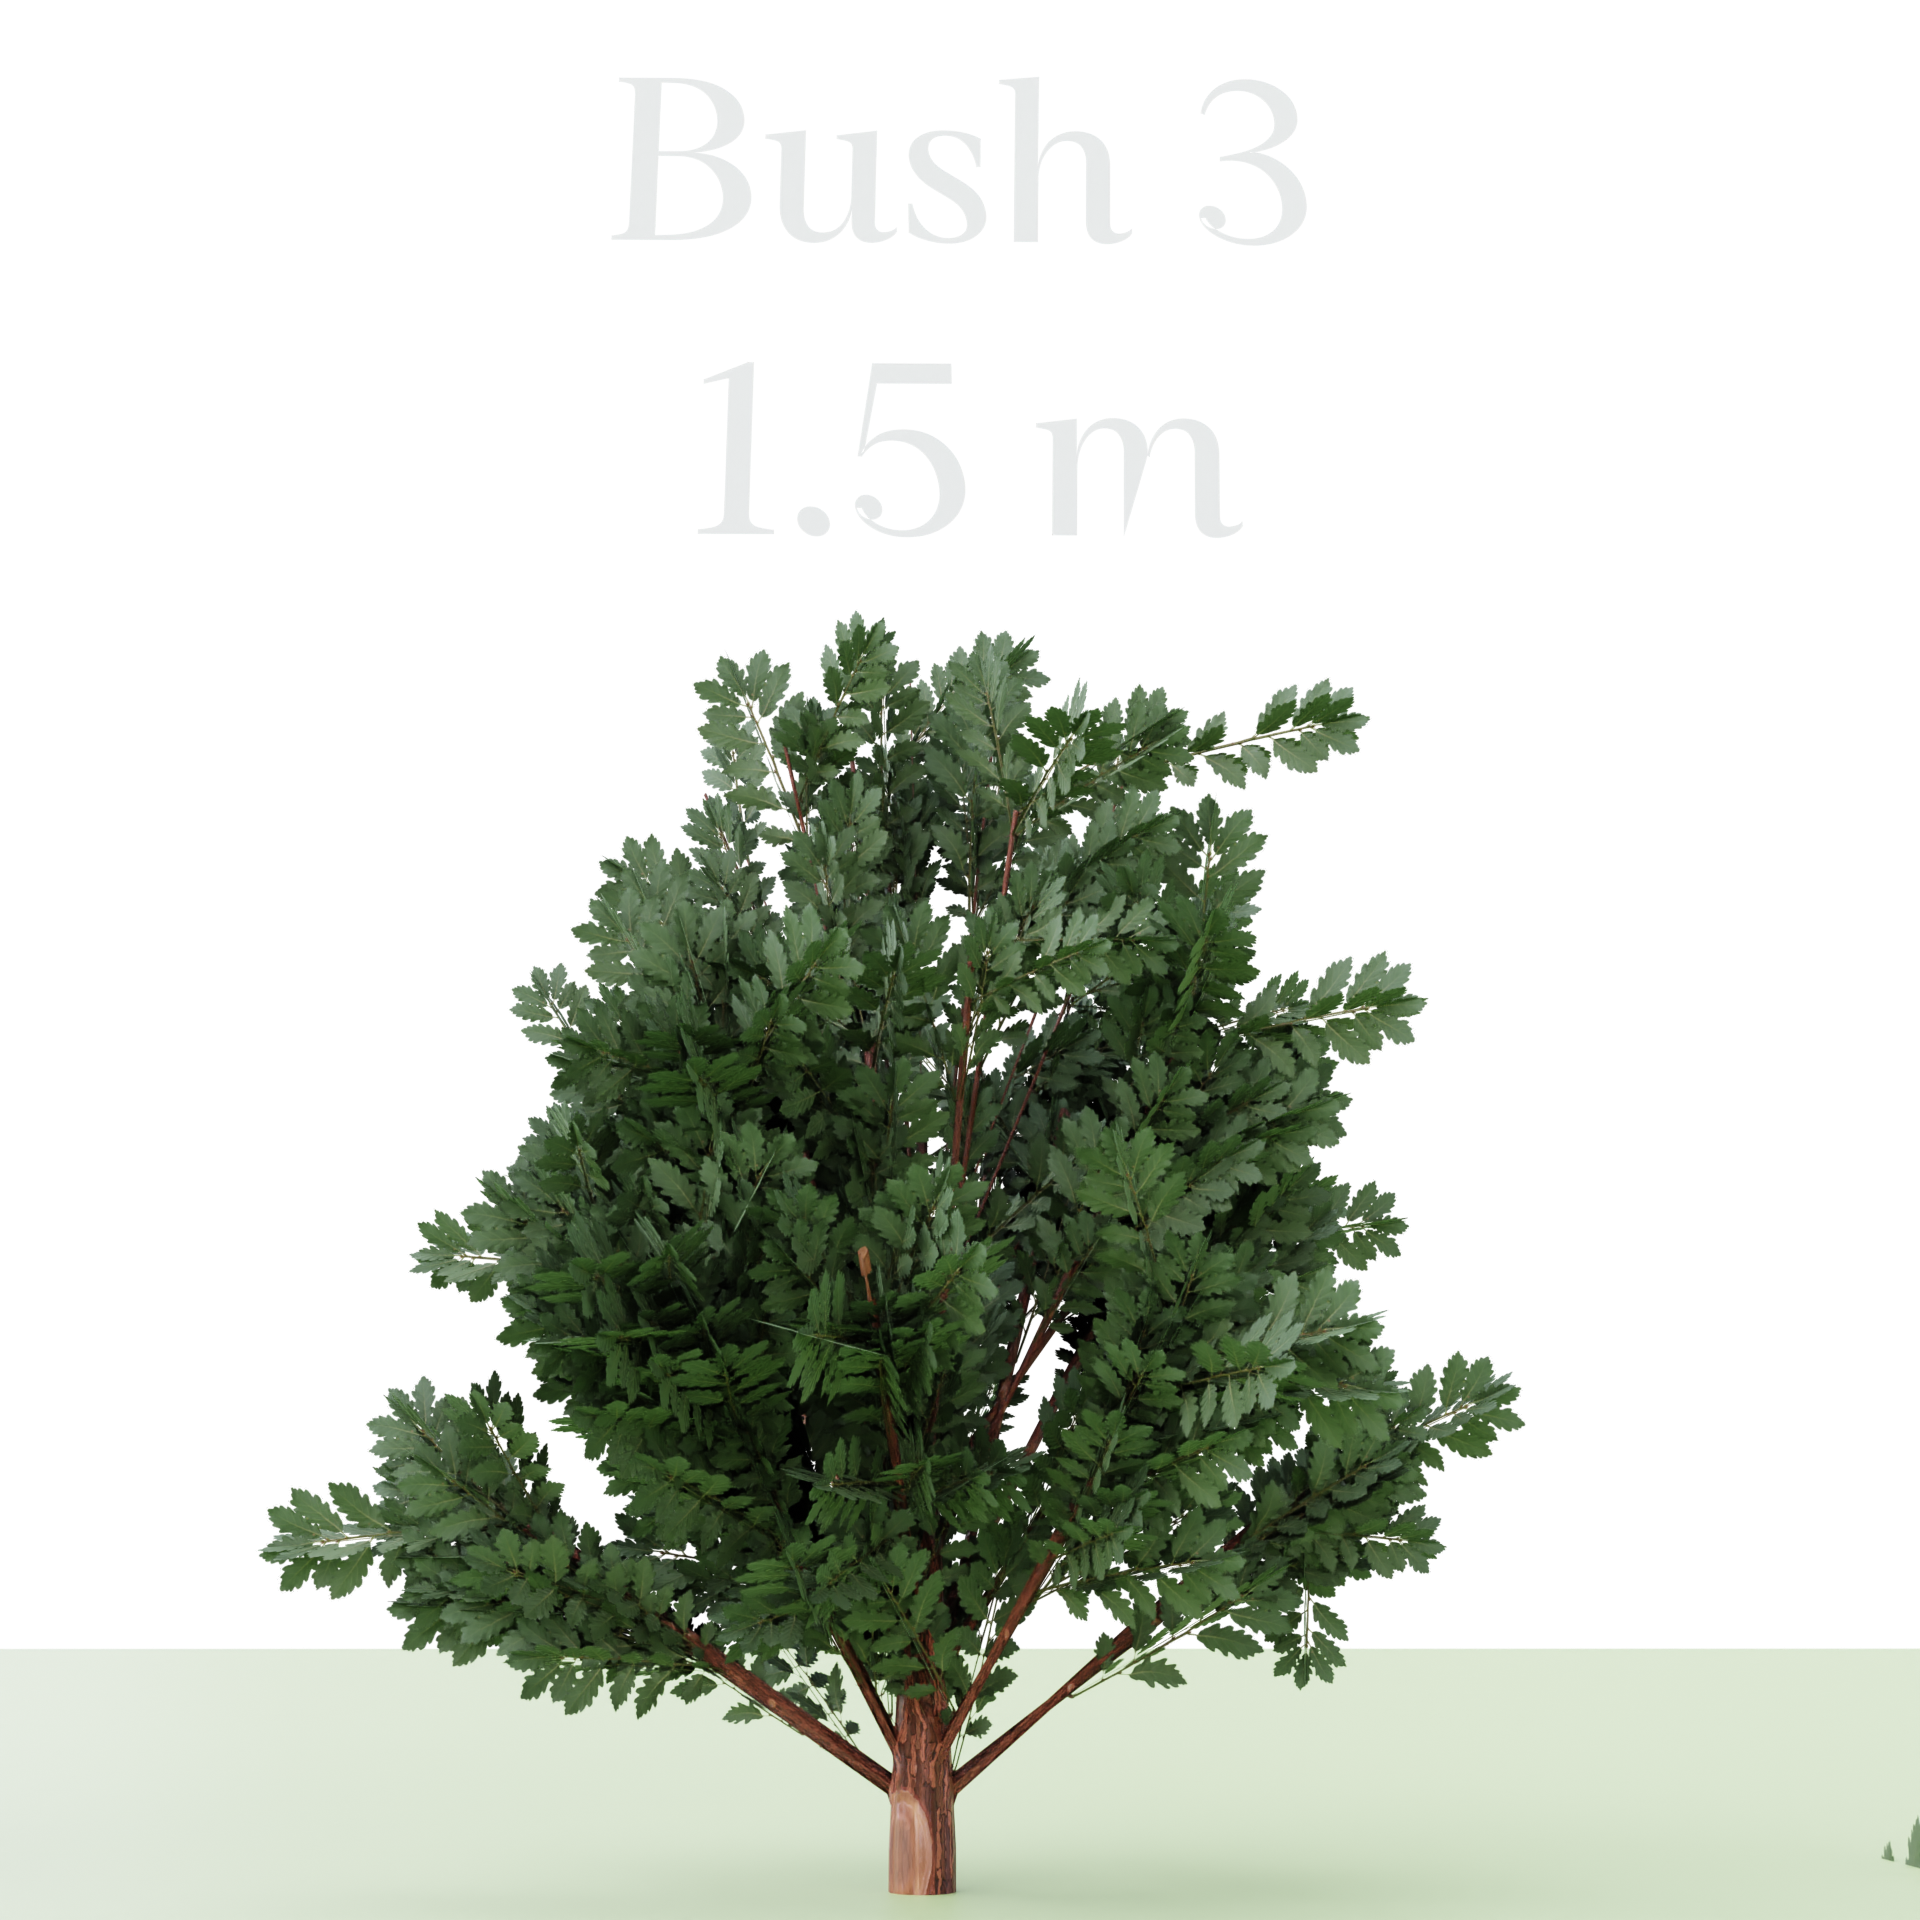 Three Bush's preview image 5